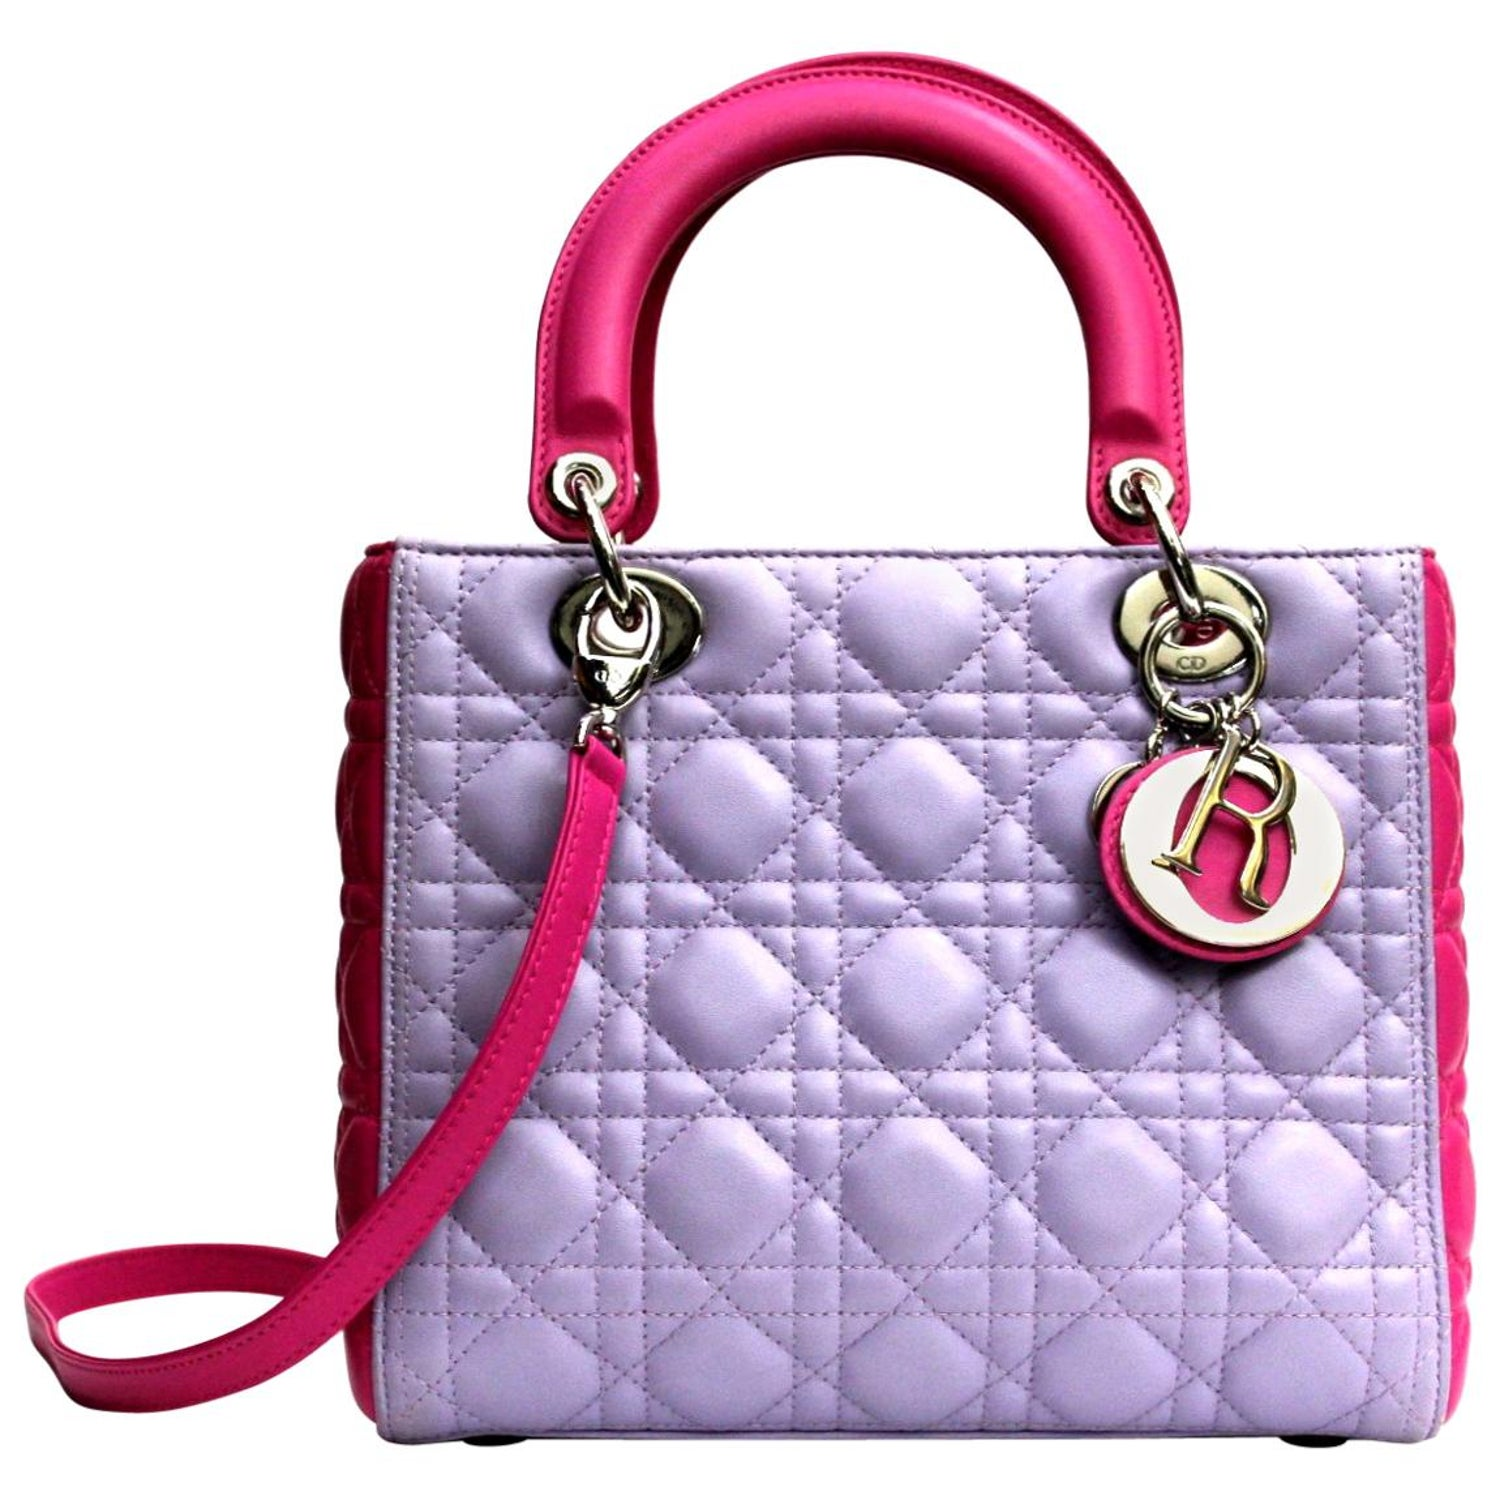 90c54f1377 Christian Dior Bi-Color Cannage Quilted Lambskin Leather Medium Lady Dior  Bag at 1stdibs